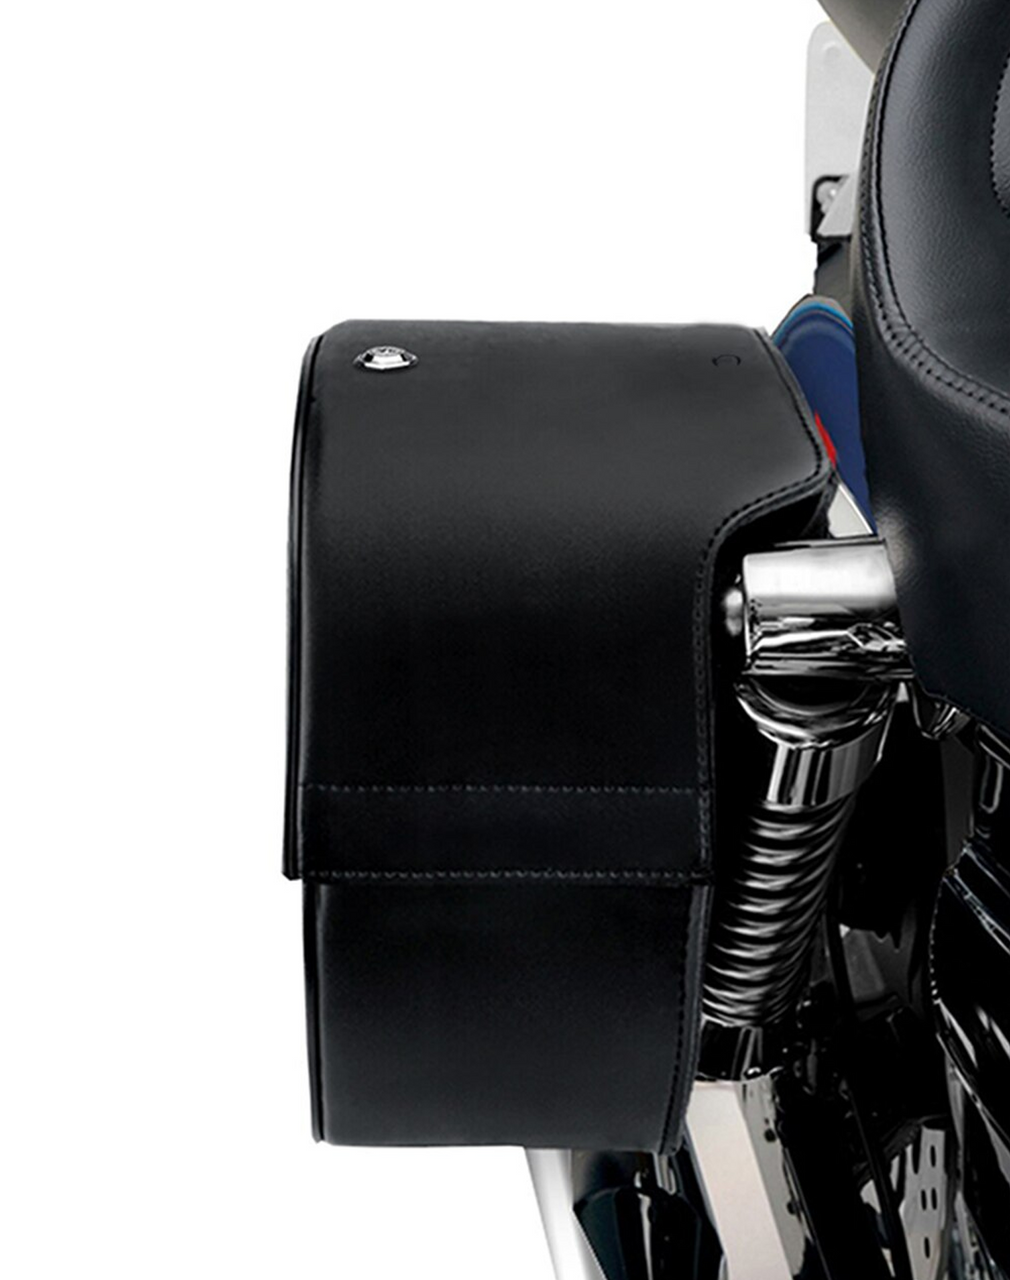 Viking Shock Cutout SS Large Slanted Studded Large Motorcycle Saddlebags For Harley Sportster Forty Eight 48 Shock Cutout View